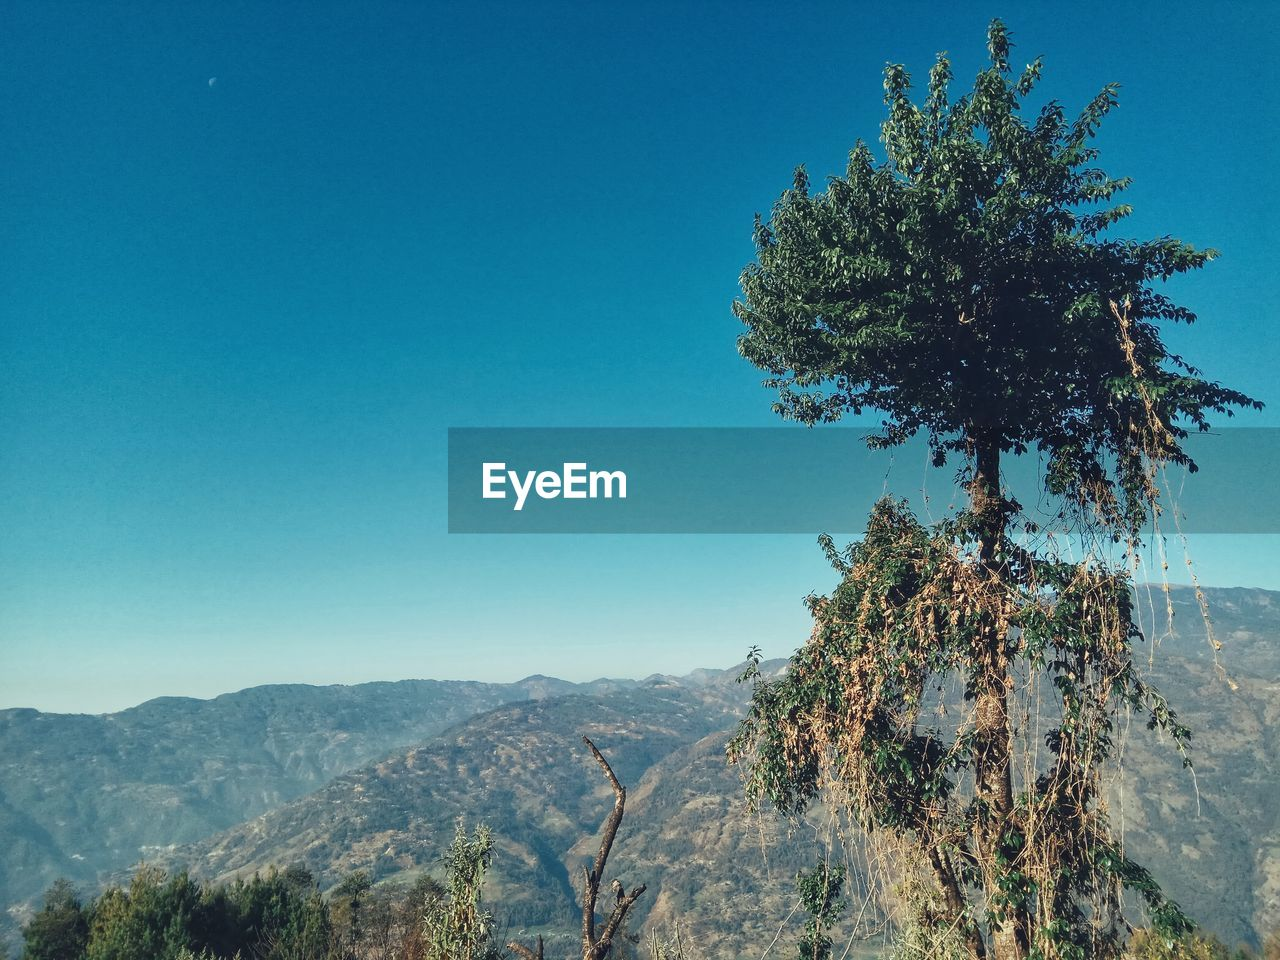 tree, mountain, nature, beauty in nature, tranquil scene, clear sky, tranquility, no people, day, scenics, growth, outdoors, blue, mountain range, landscape, branch, sky